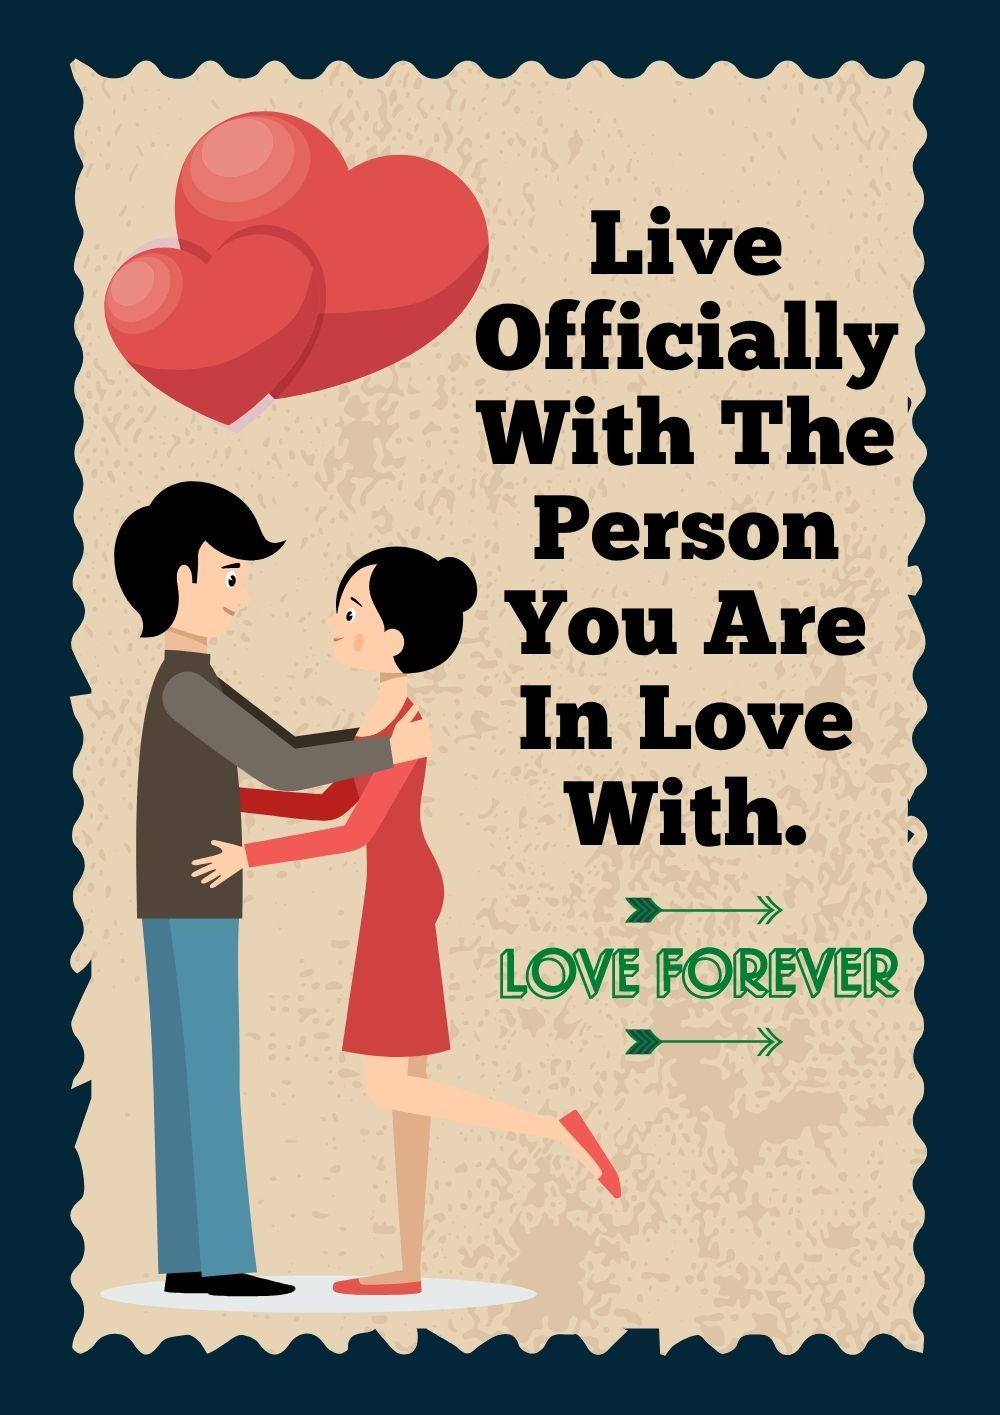 Live Officially With The Person You Are In Love With.